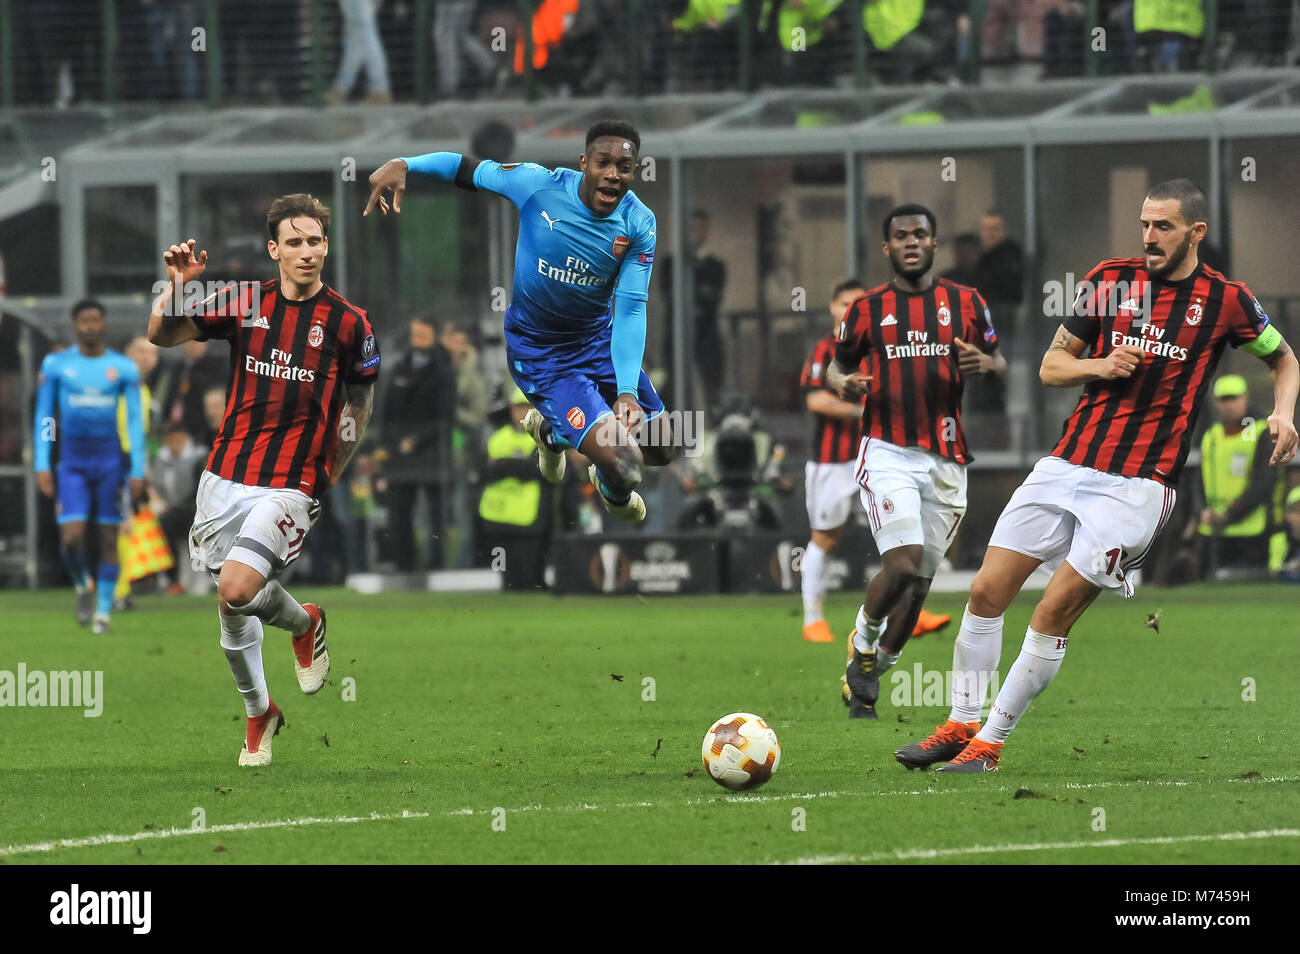 Milan, Italy. 8th March, 2018. Danny Welbeck(Arsenal FC) during the match UEFA Europa League between AC Milan and Stock Photo